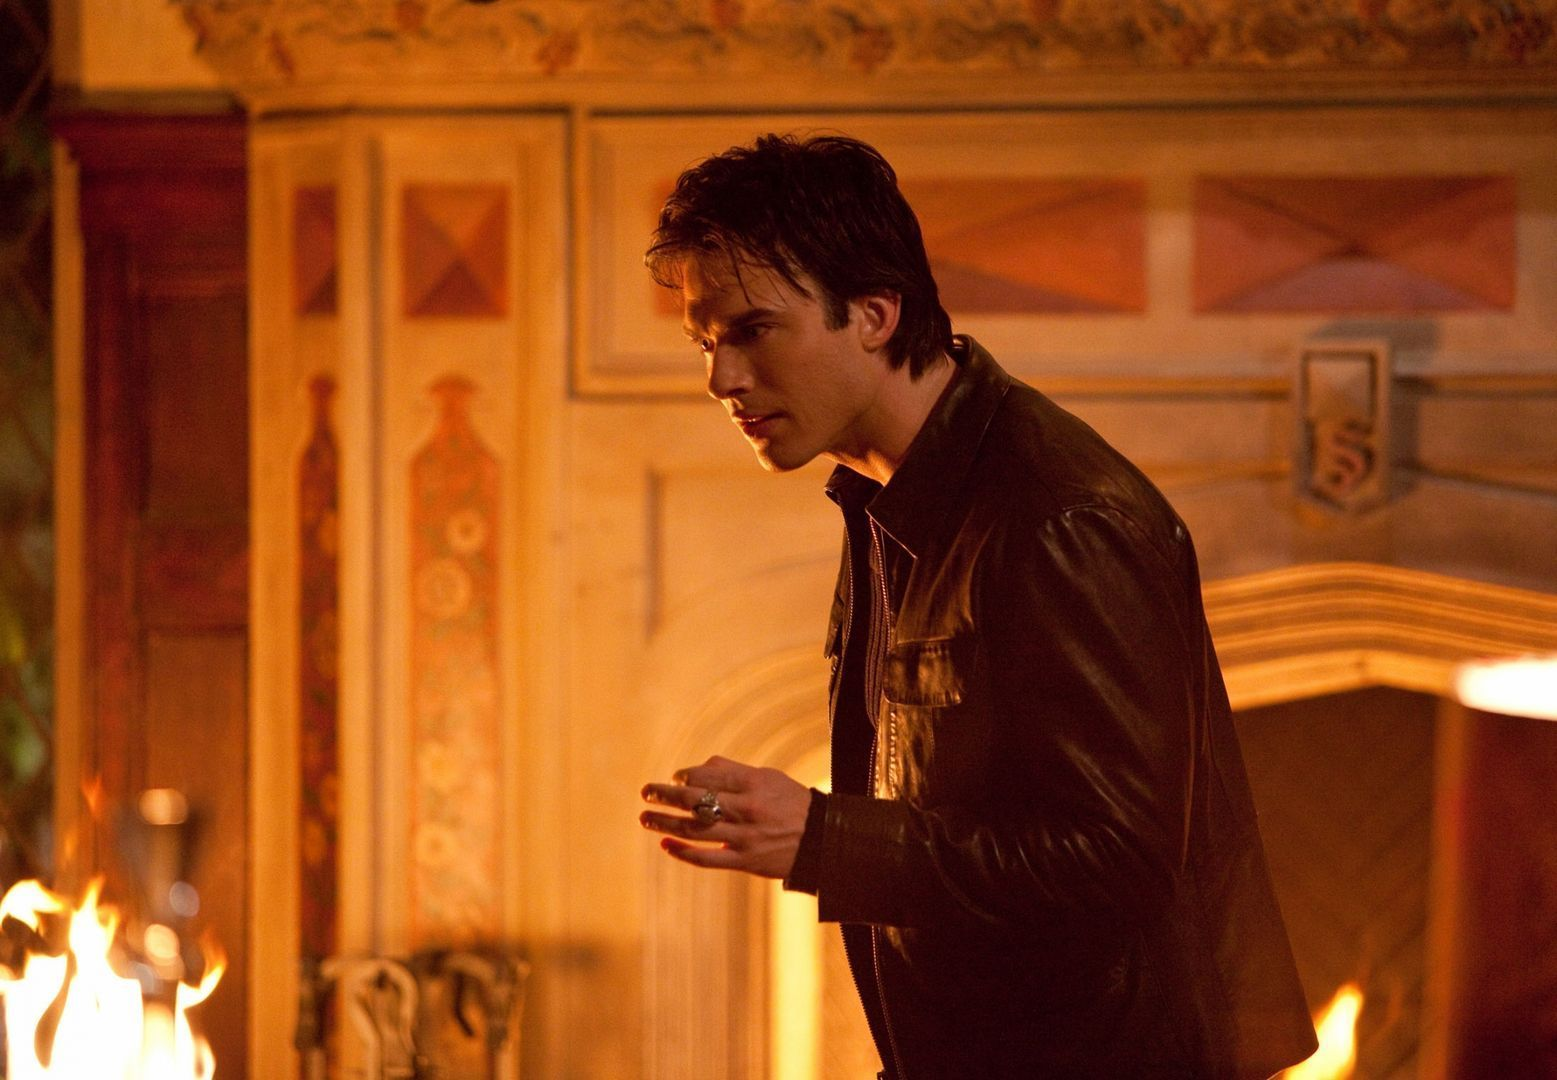 http://images2.fanpop.com/image/photos/11300000/1x20-Blood-Brothers-Promotional-Photos-the-vampire-diaries-tv-show-11380903-1557-1080.jpg